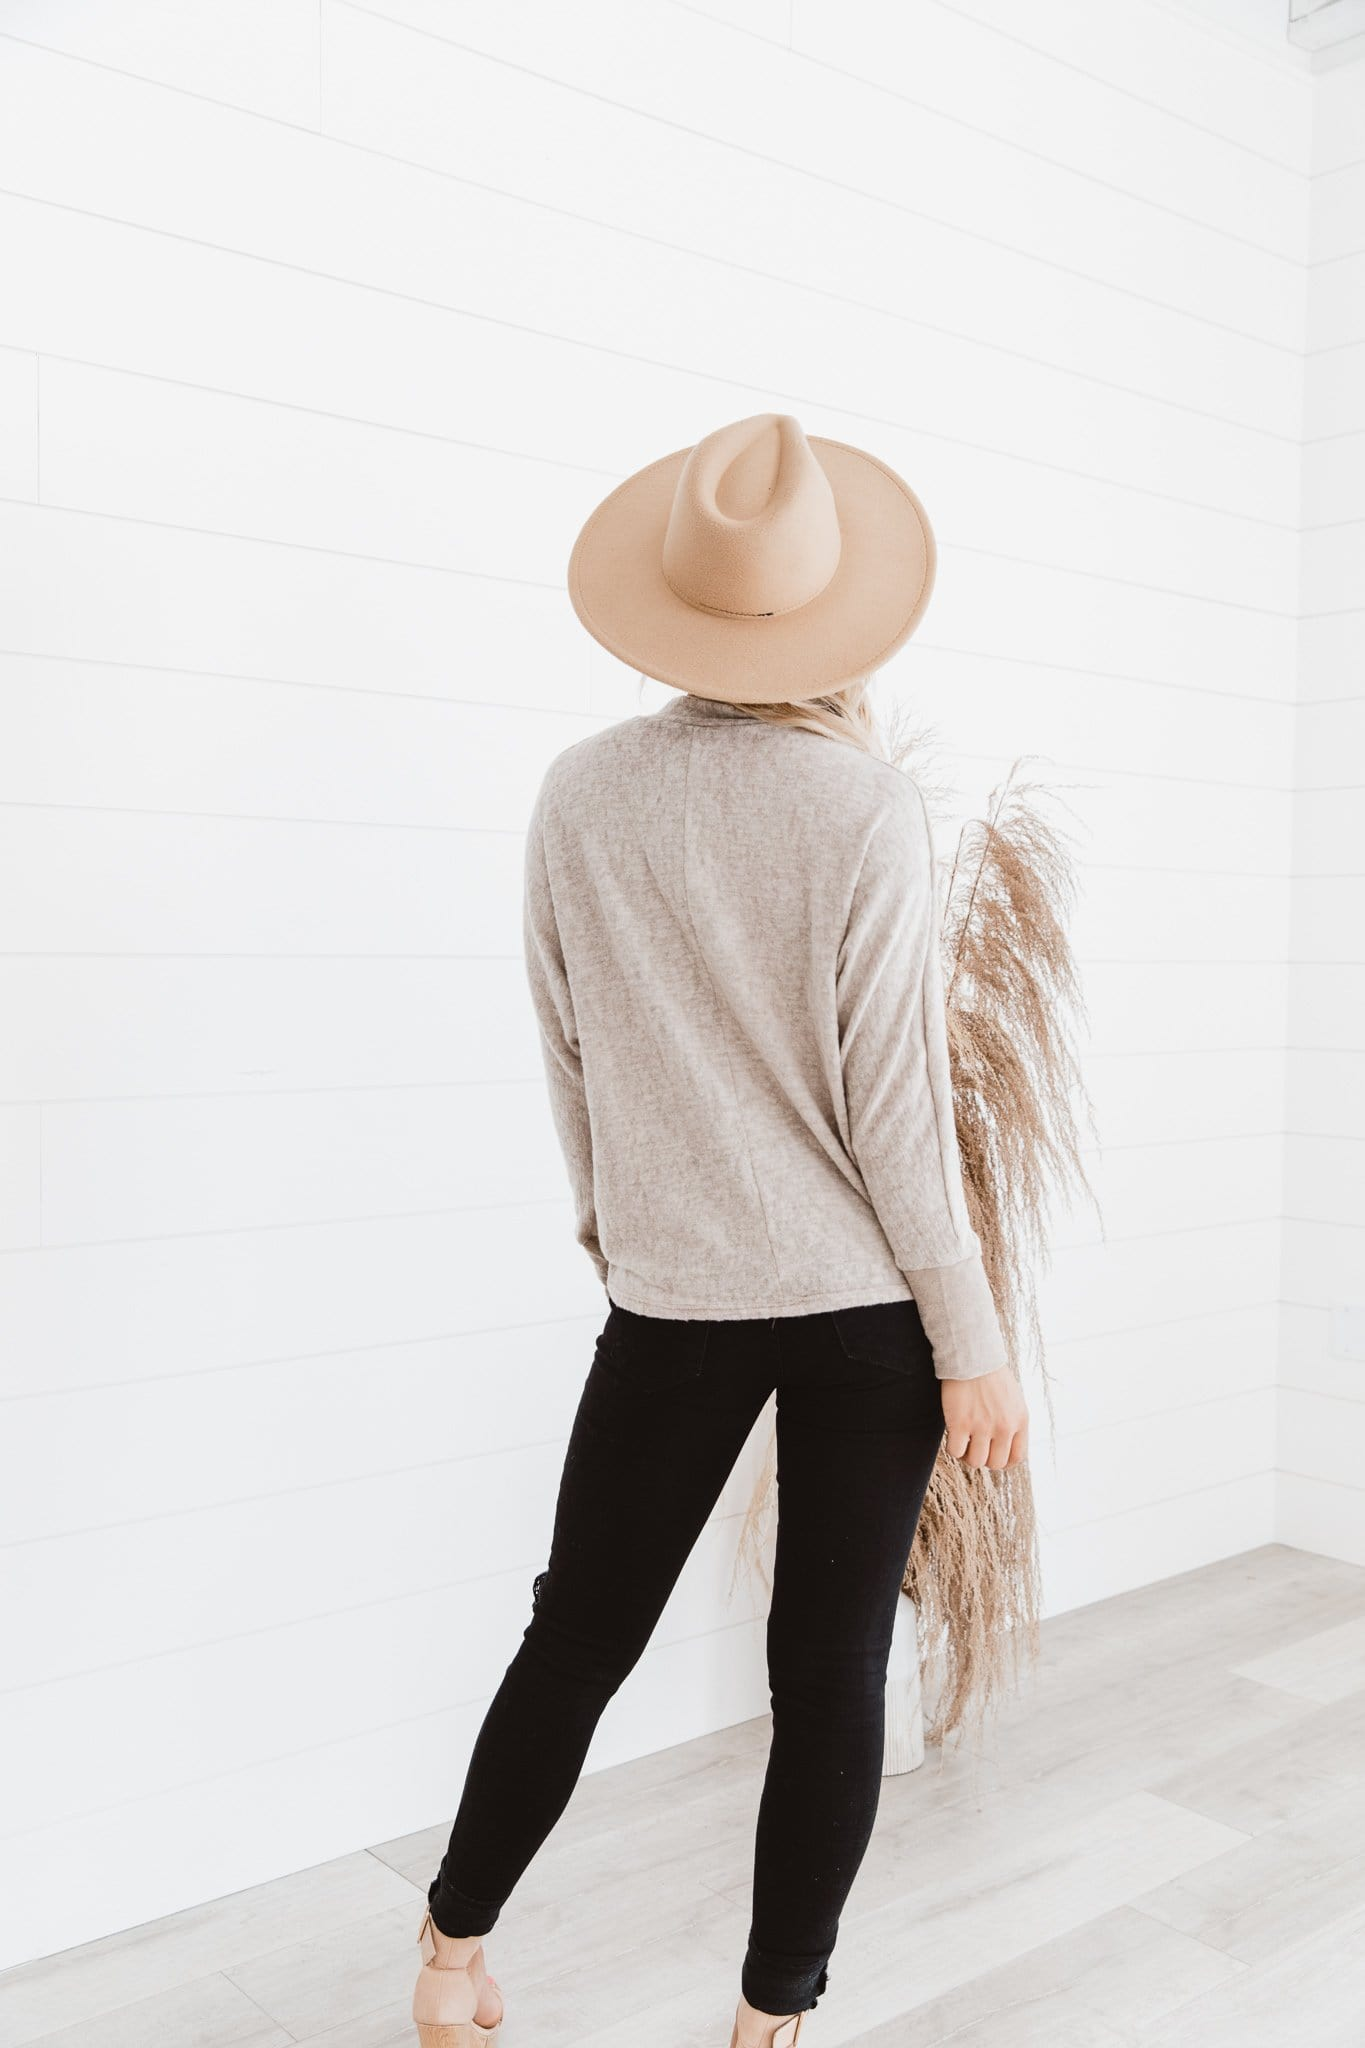 The Waverly Dolman Top in Oatmeal